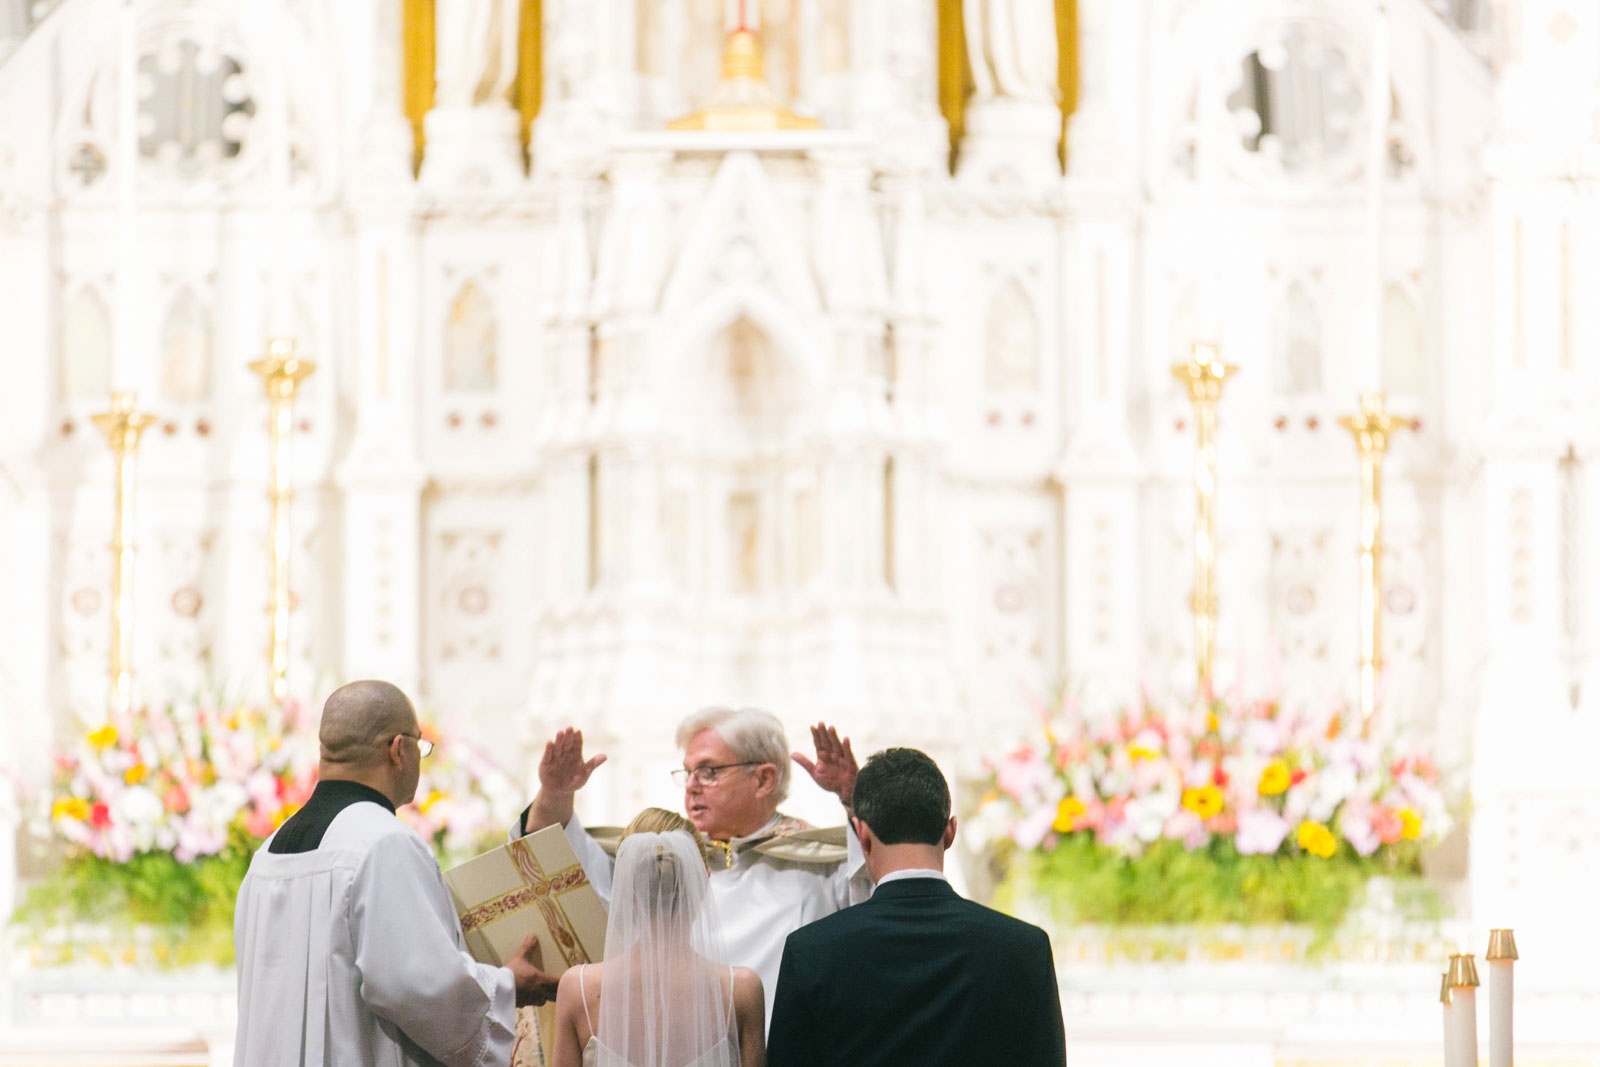 priest blessing the bride and groom at the altar during traditional Roman Catholic wedding ceremony